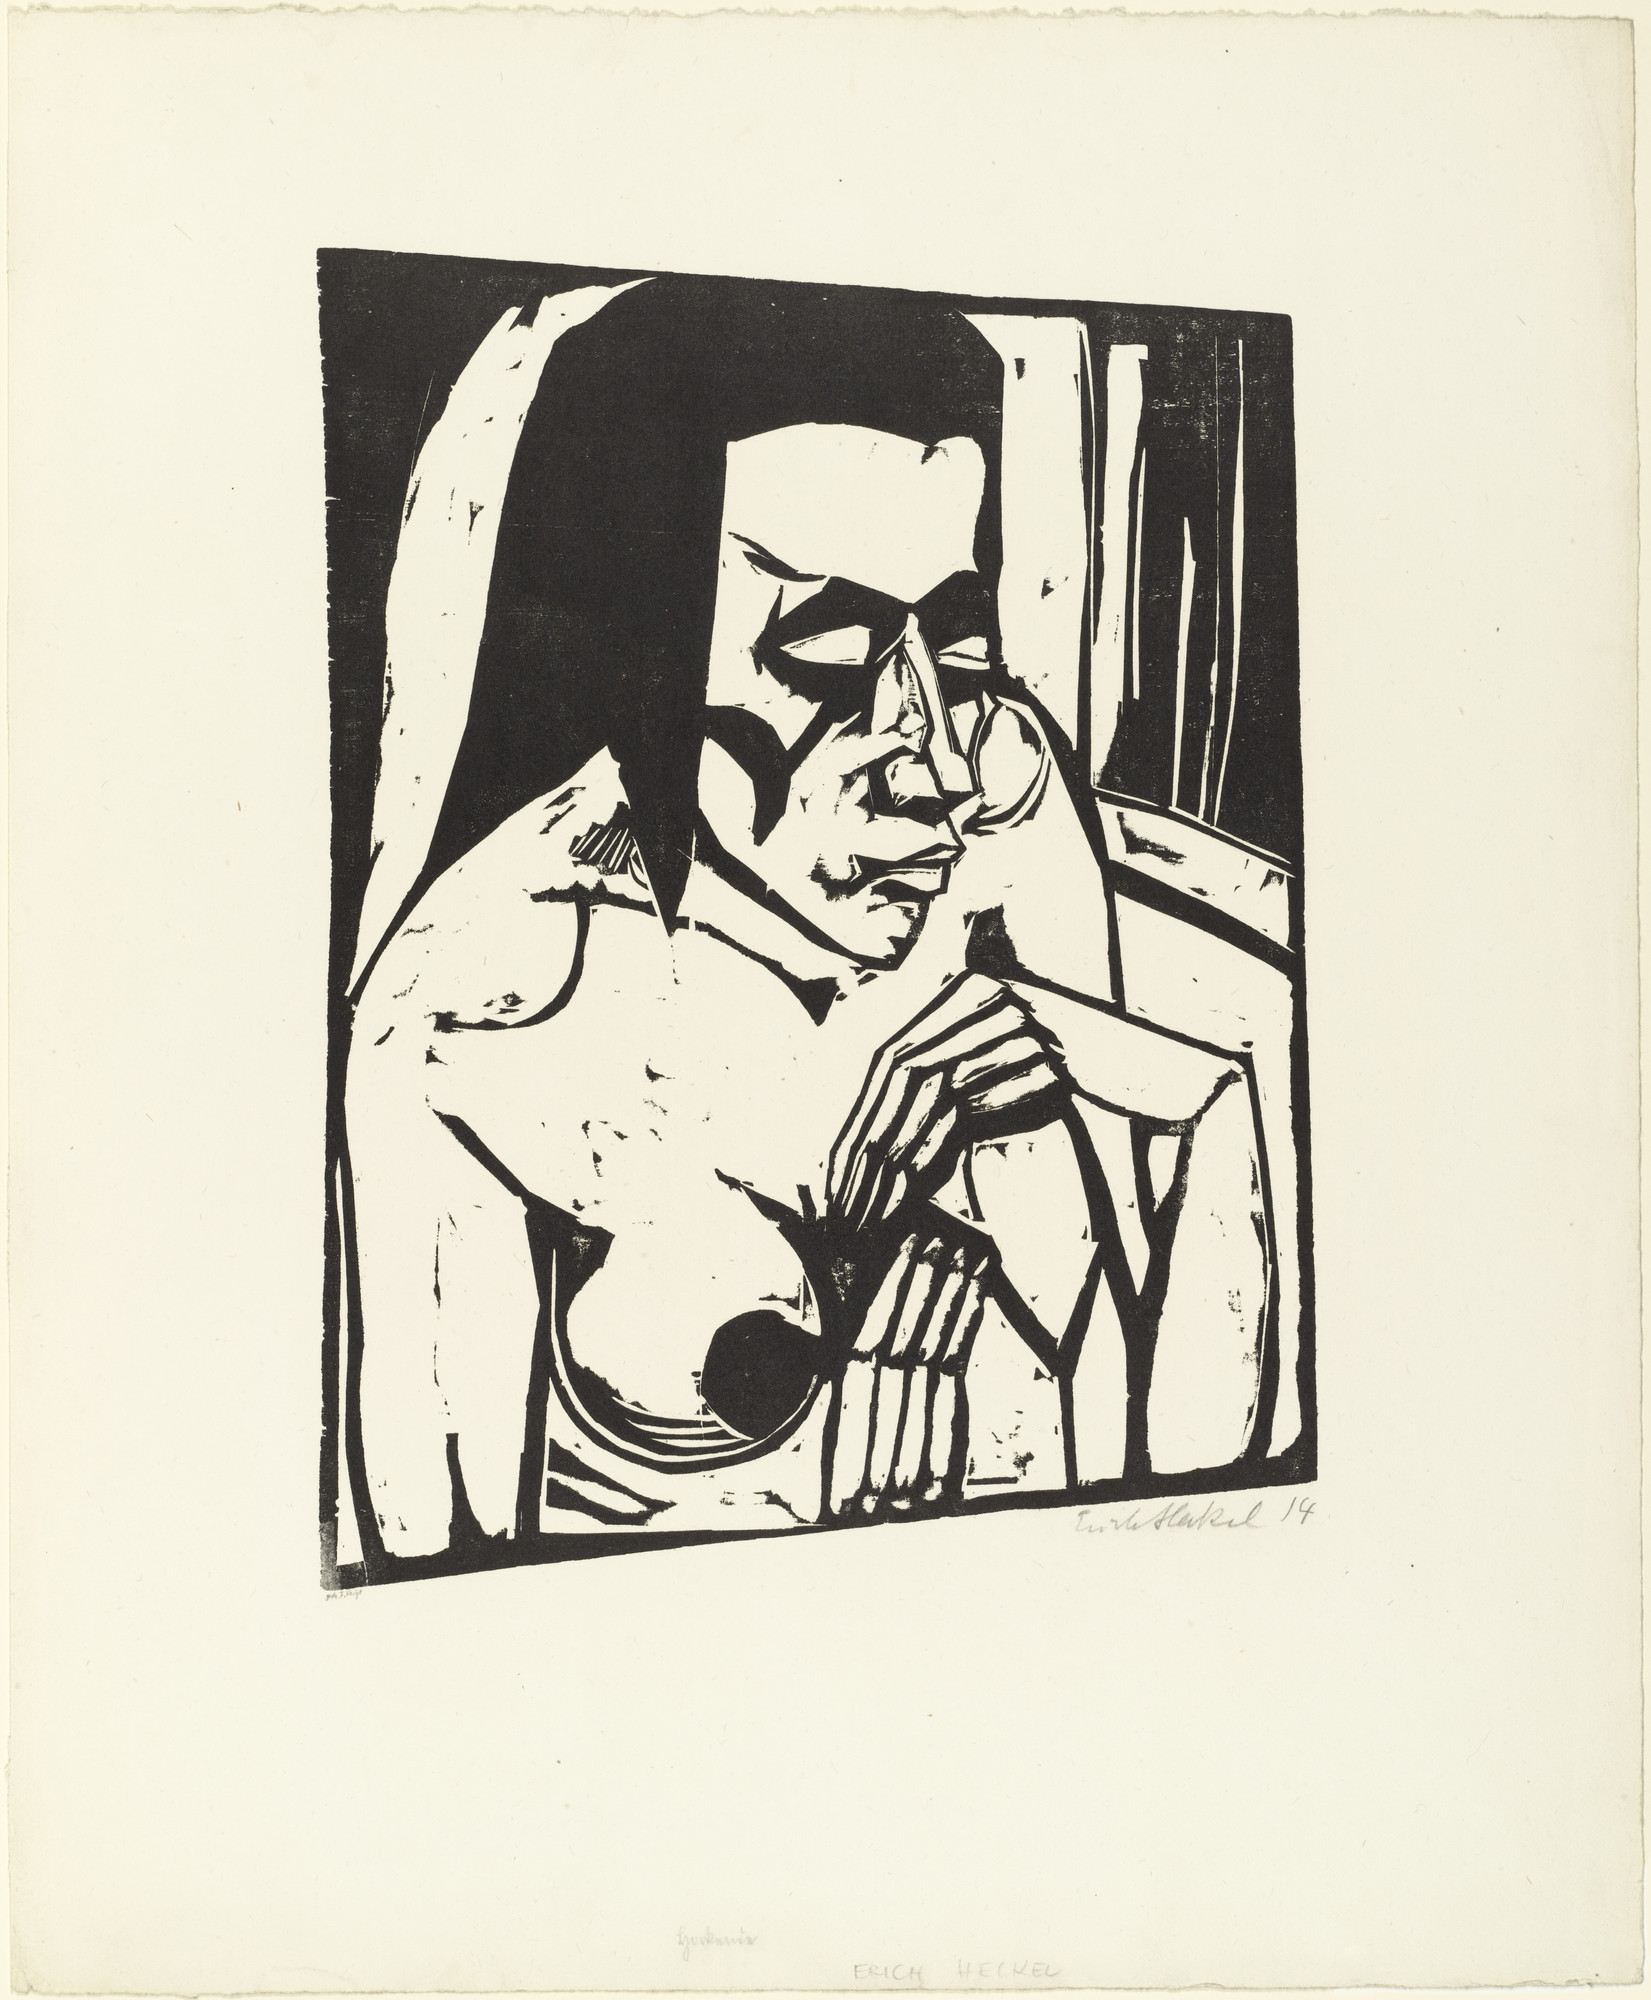 Erich Heckel. Crouching Woman (Hockende) from the portfolio Eleven Woodcuts (Elf Holzschnitte). (1913), dated 1914, (published 1921)